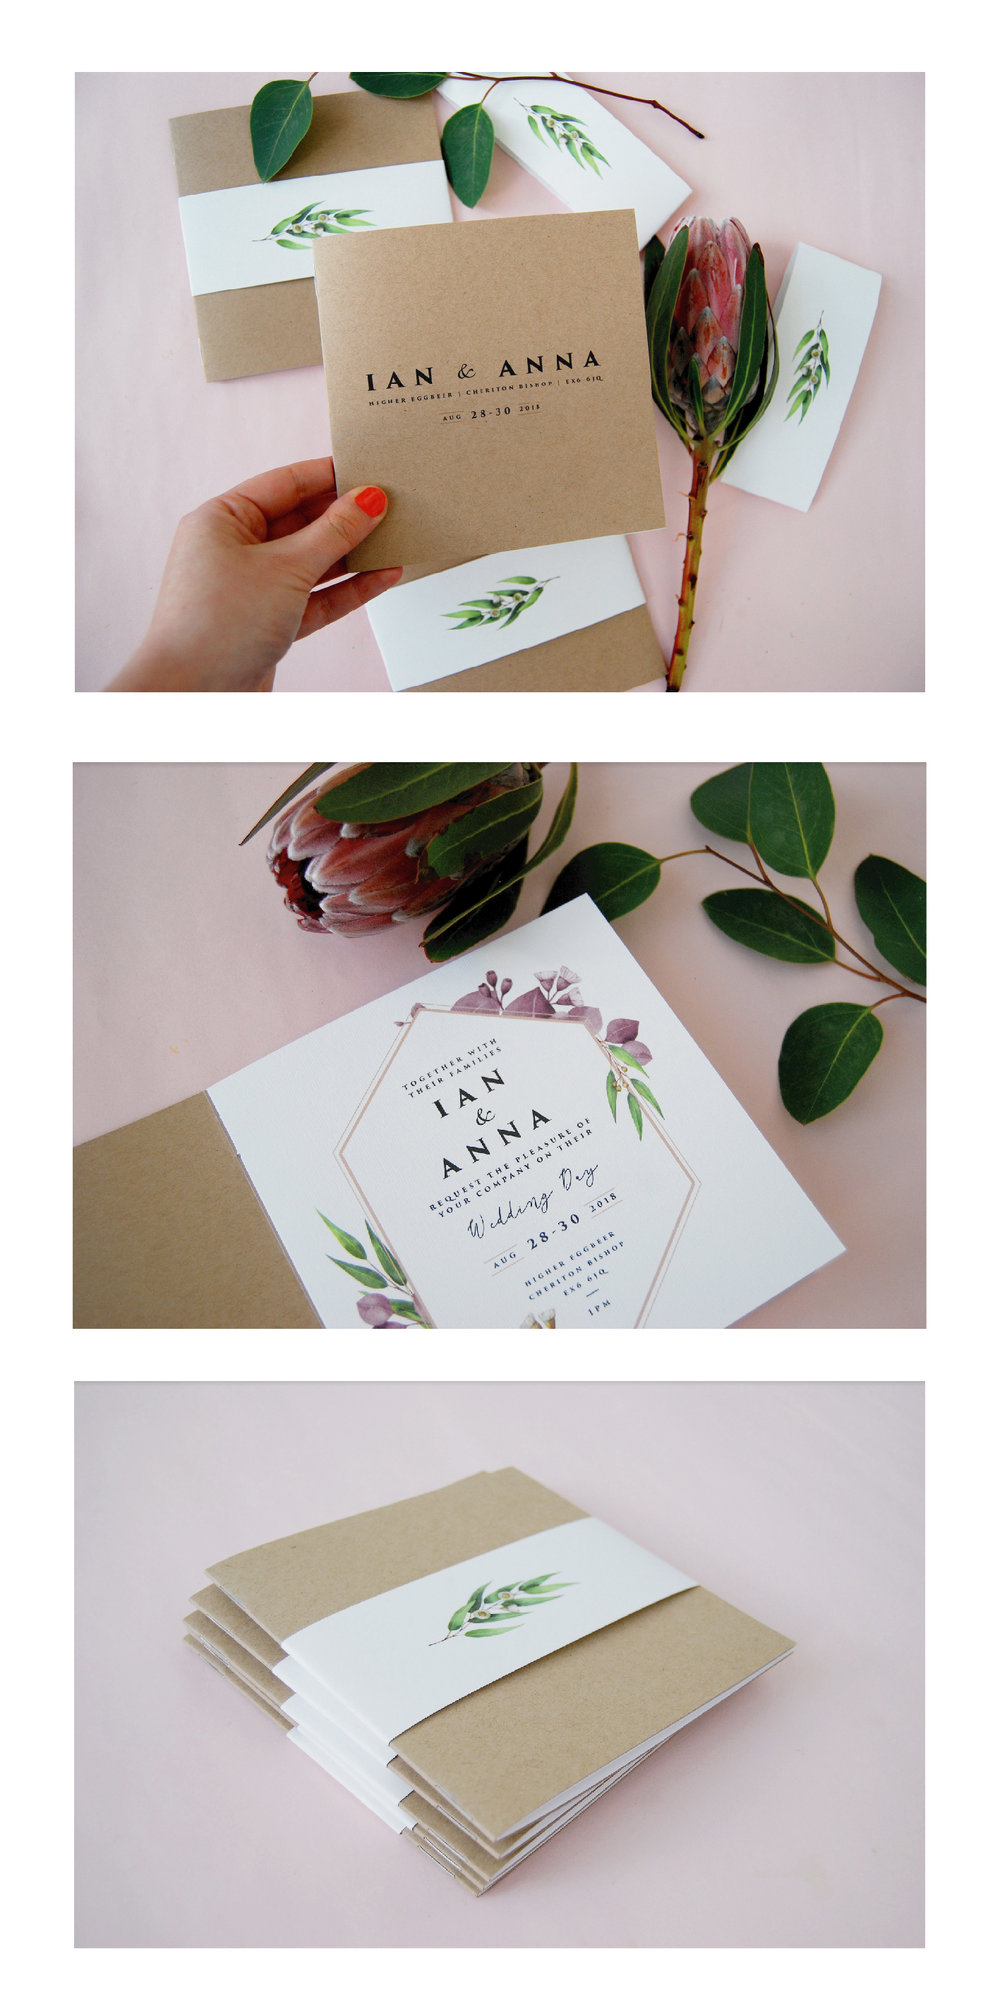 My dear friends Ian & Anna's booklet style invitations